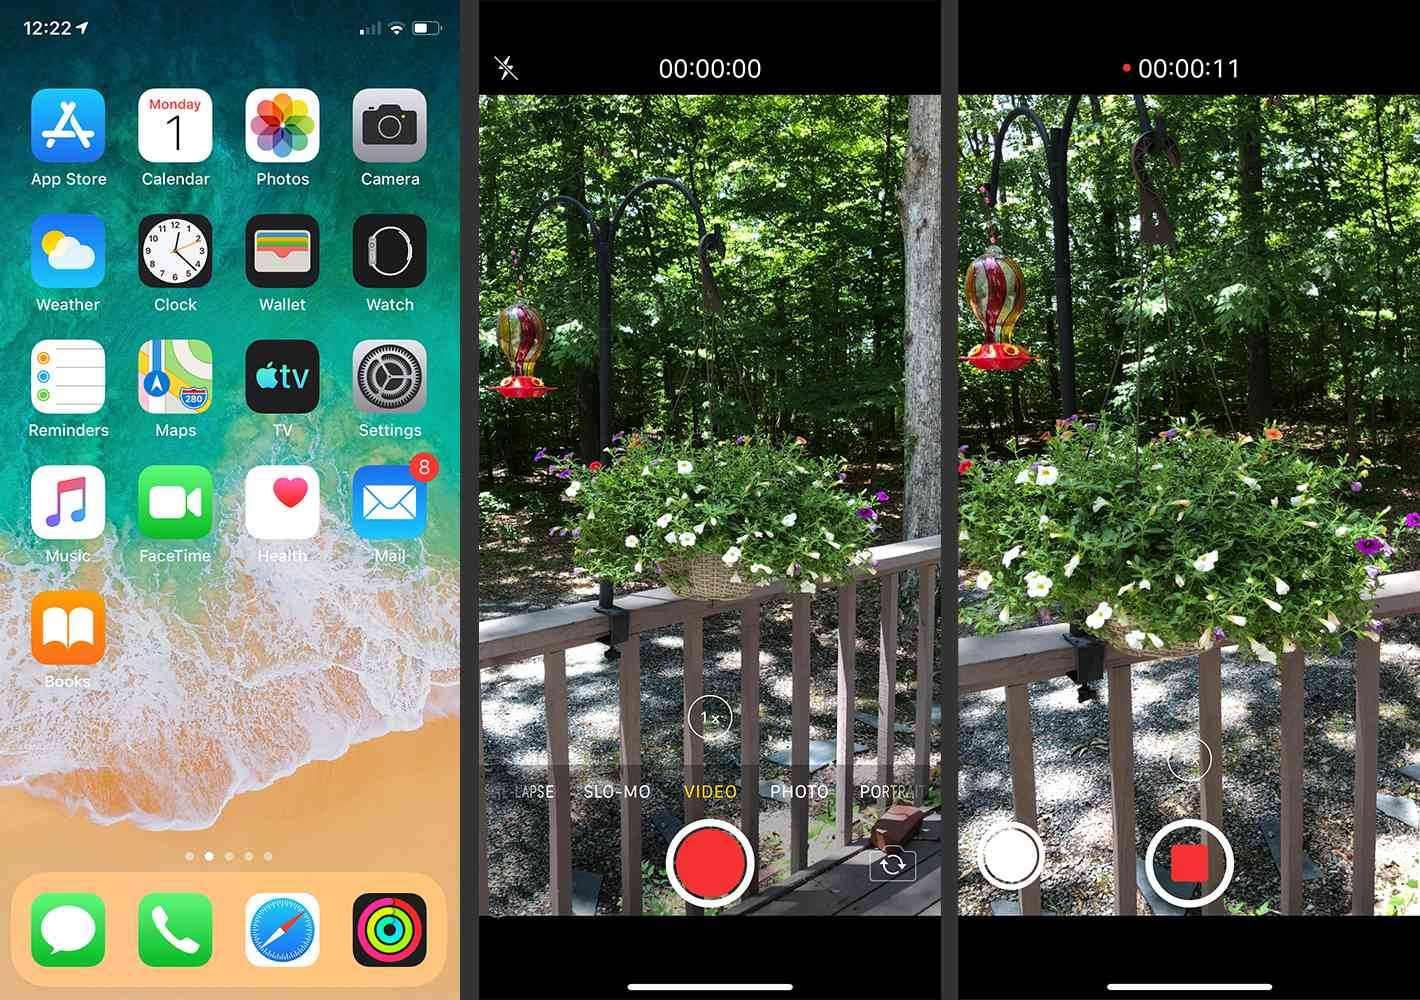 Take Photos and Record Video at the Same Time on iPhone